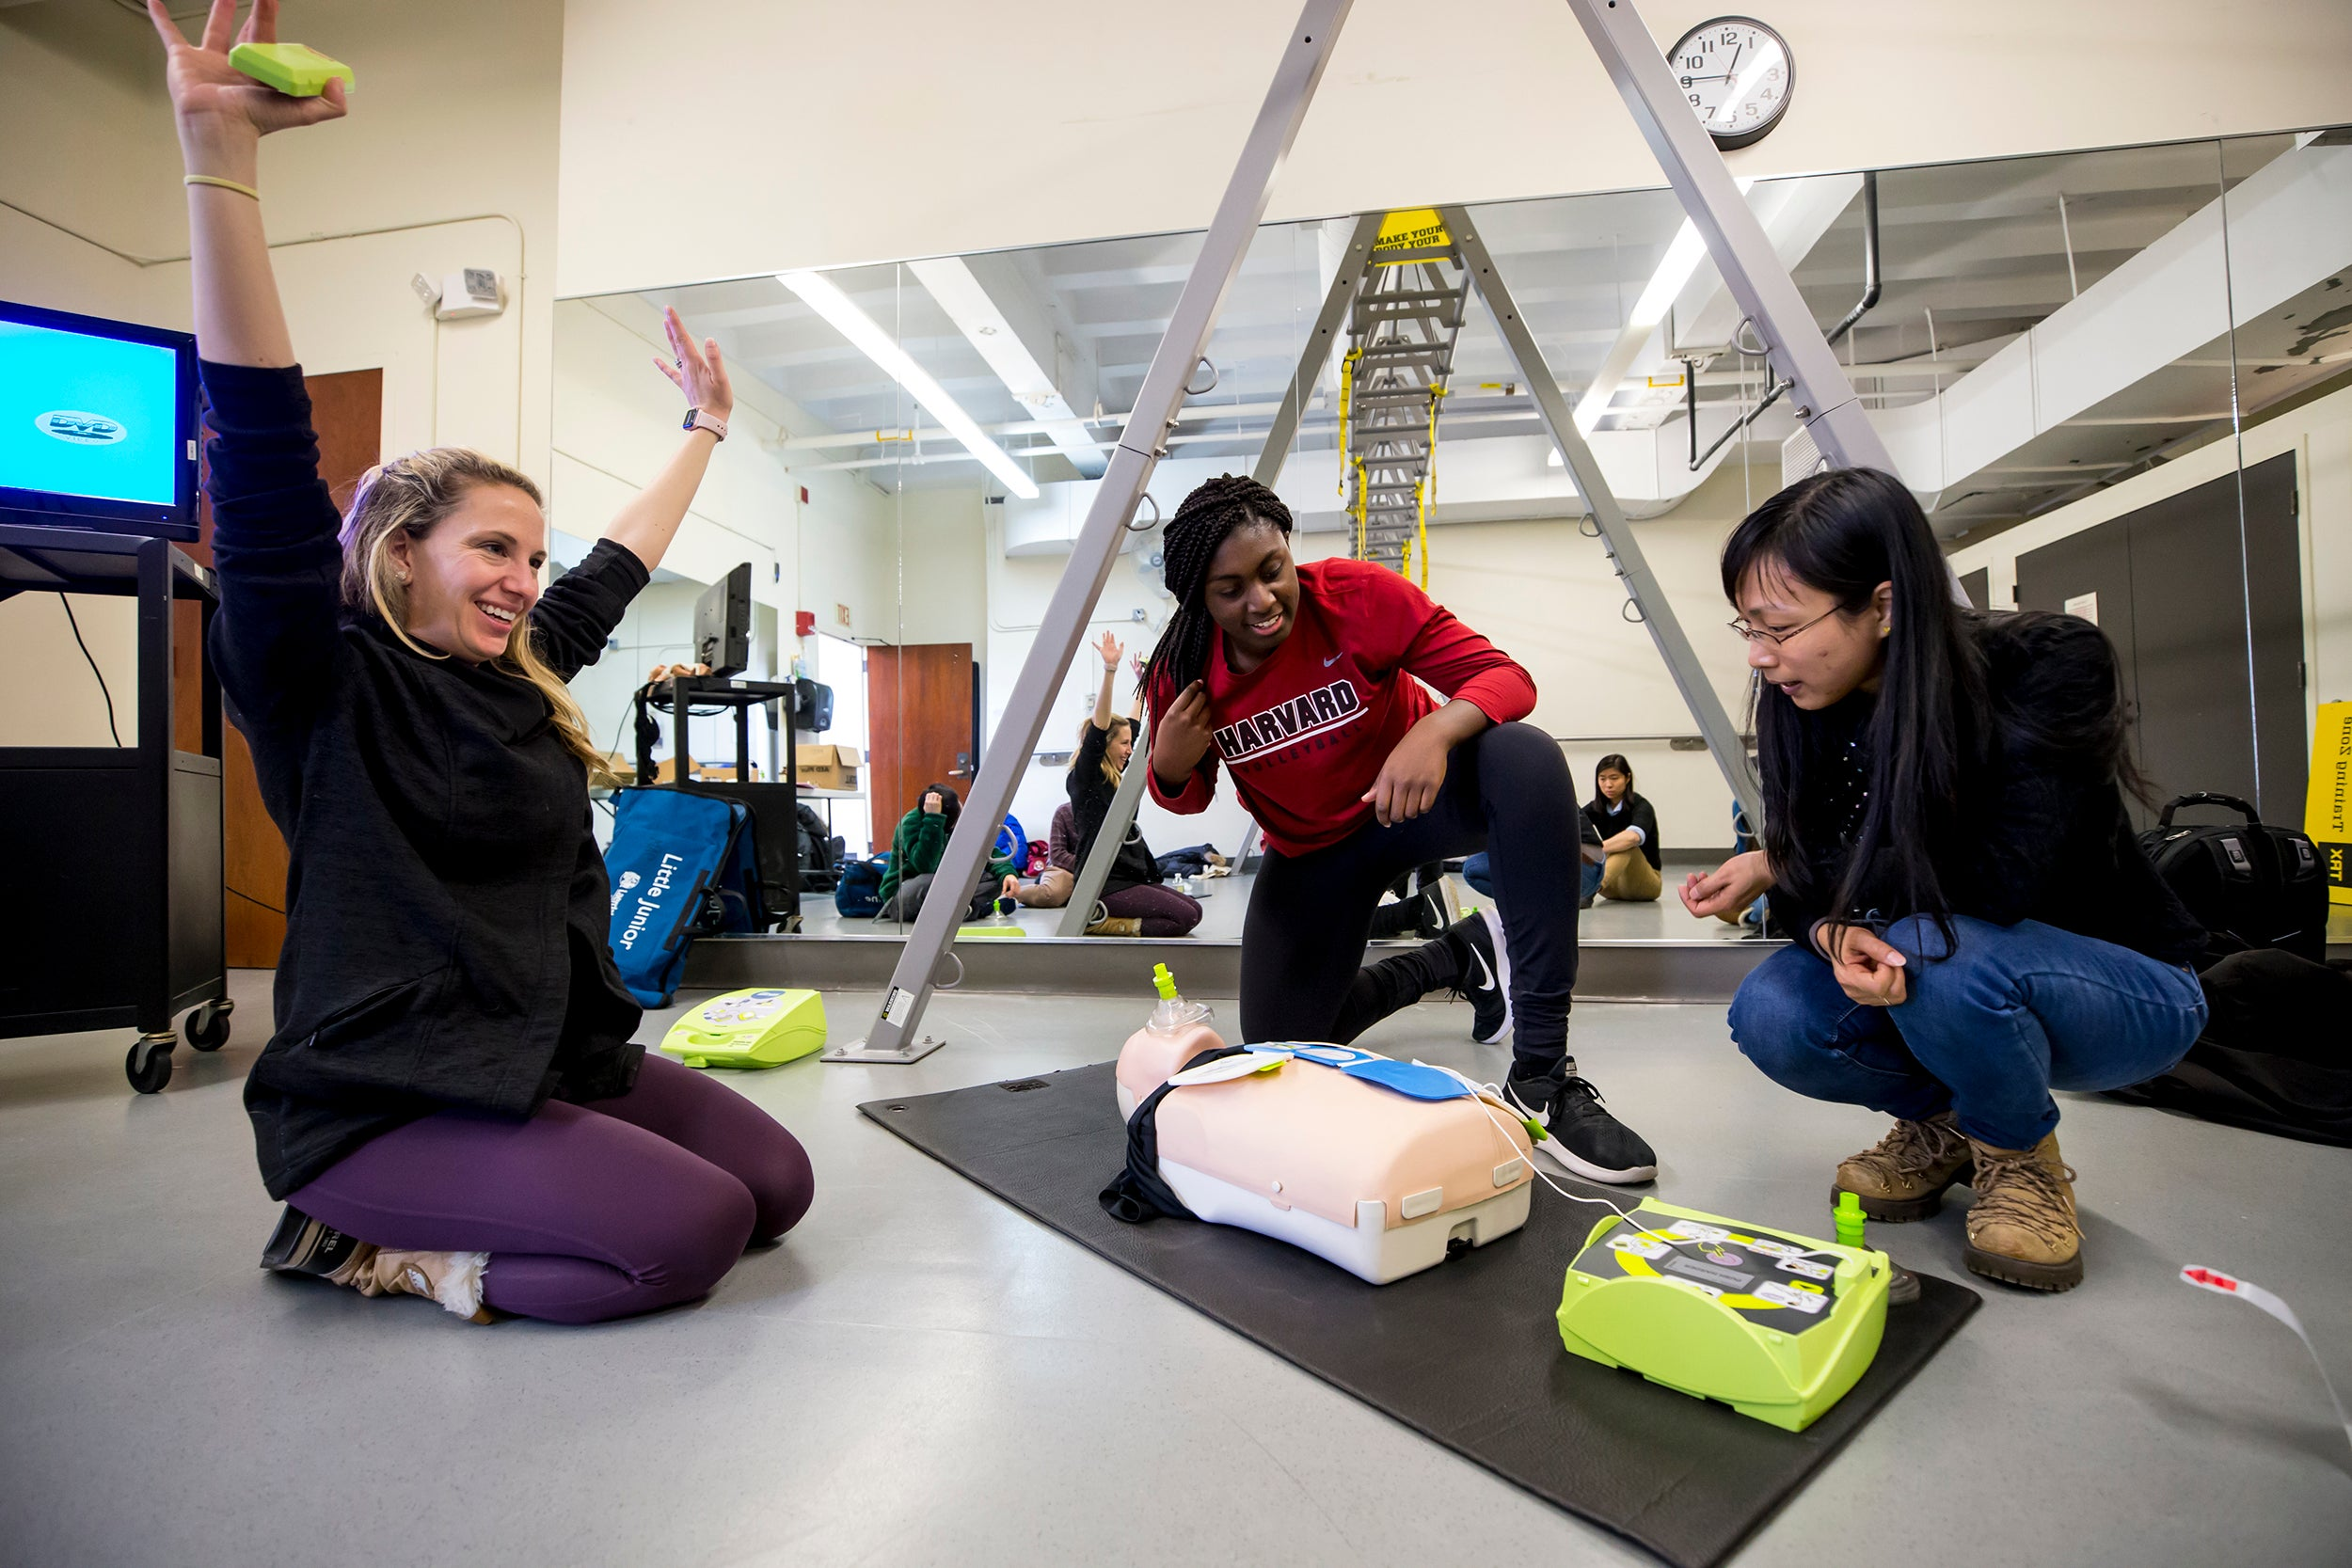 Fitness instructor Christina Hoff (from left), Sope Adeleye '20, and visiting scholar Qingqing He '18 participate in American Heart Association Heart Saver CPR and AED (automated external defibrillator) training for adults, children, and infants. Rose Lincoln/Harvard Staff Photographer